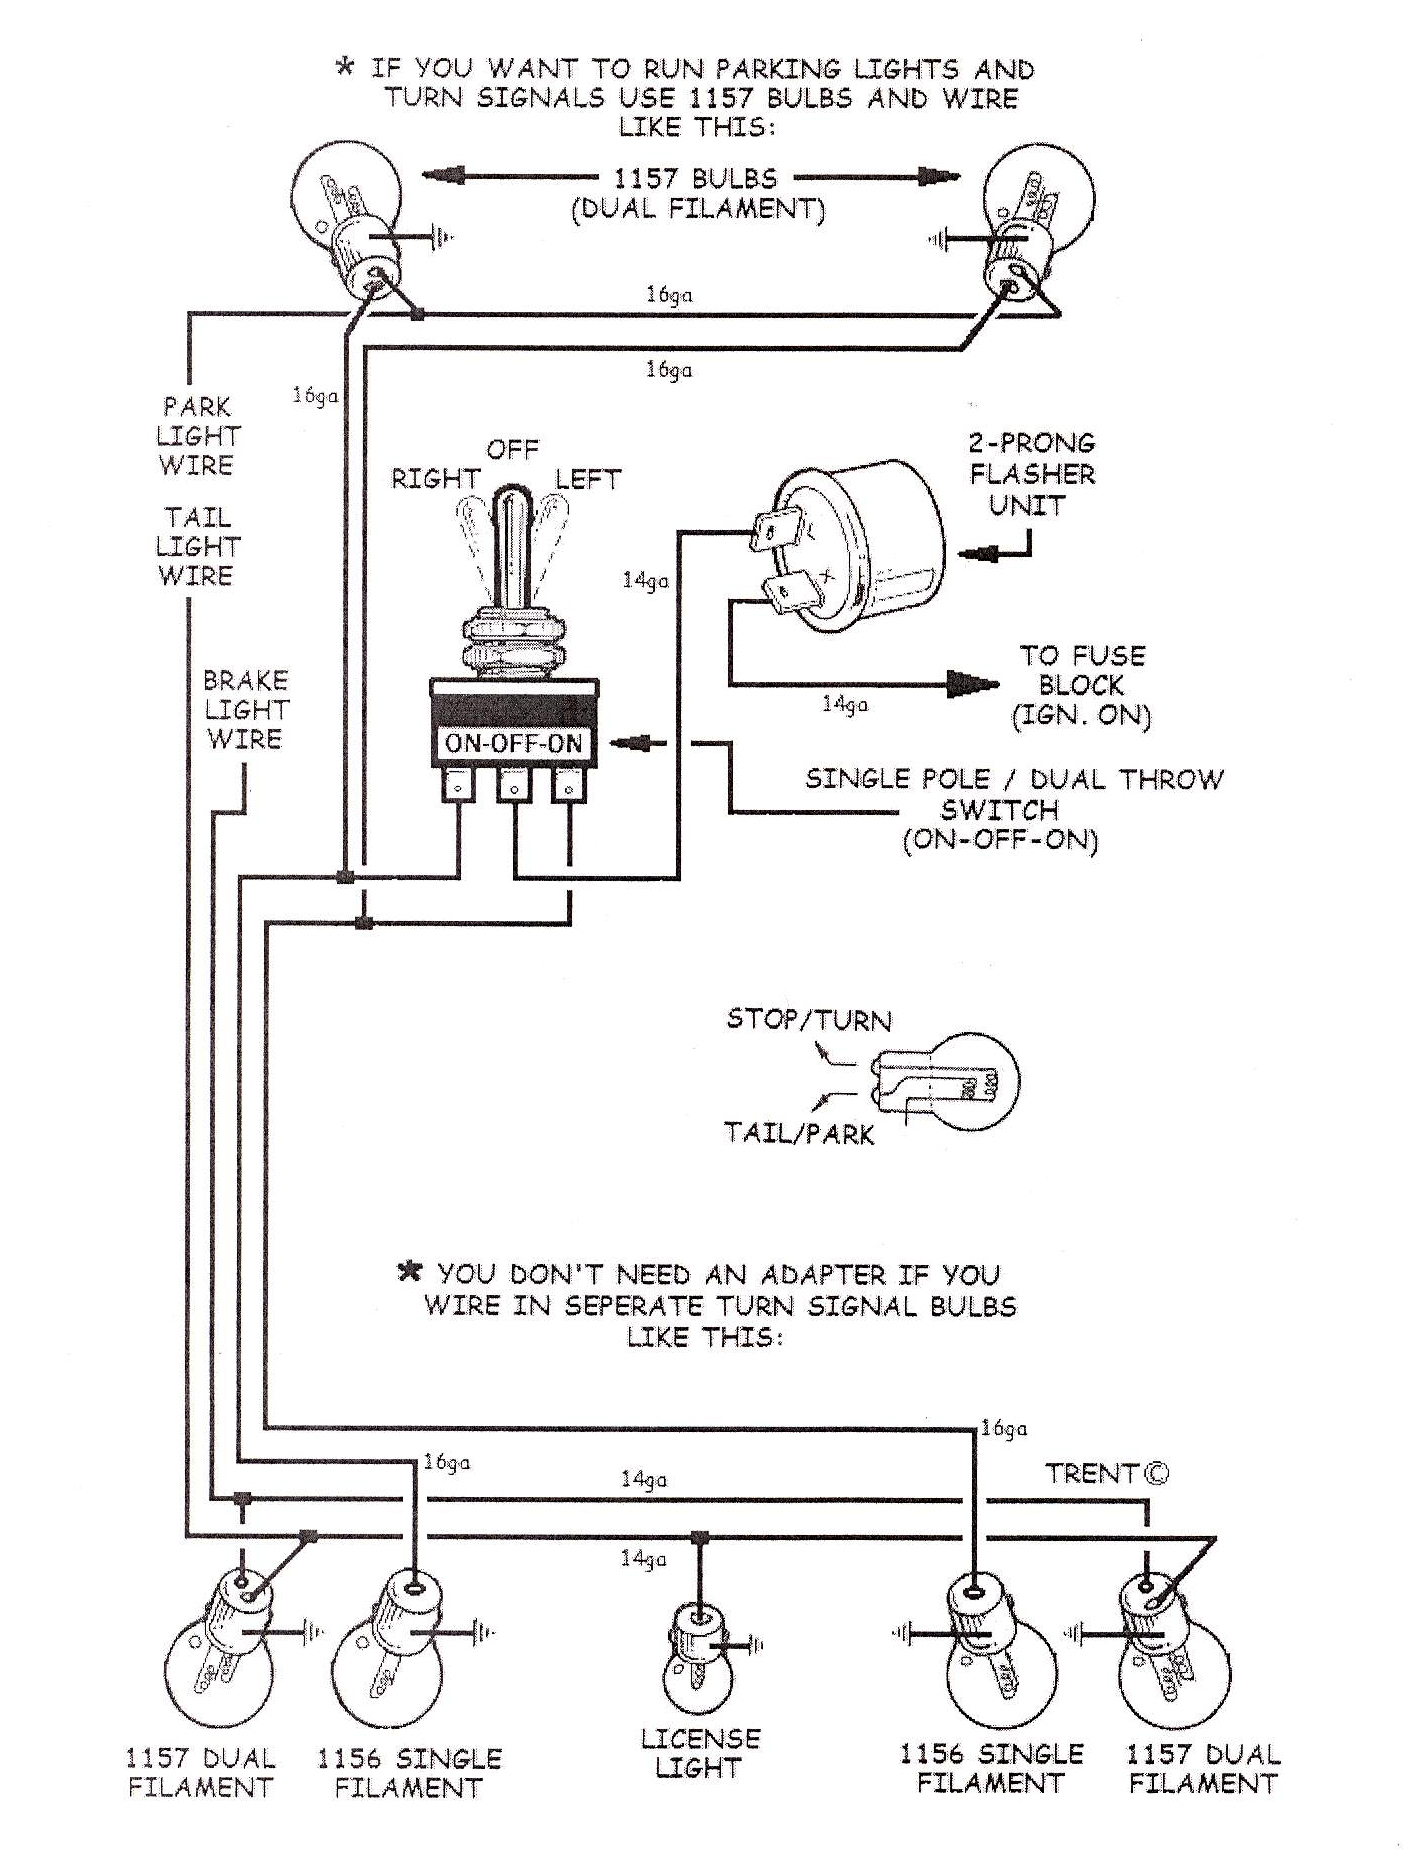 turnsignalwiringdiagram ididit faq 1965 mustang turn signal wiring diagram at bakdesigns.co